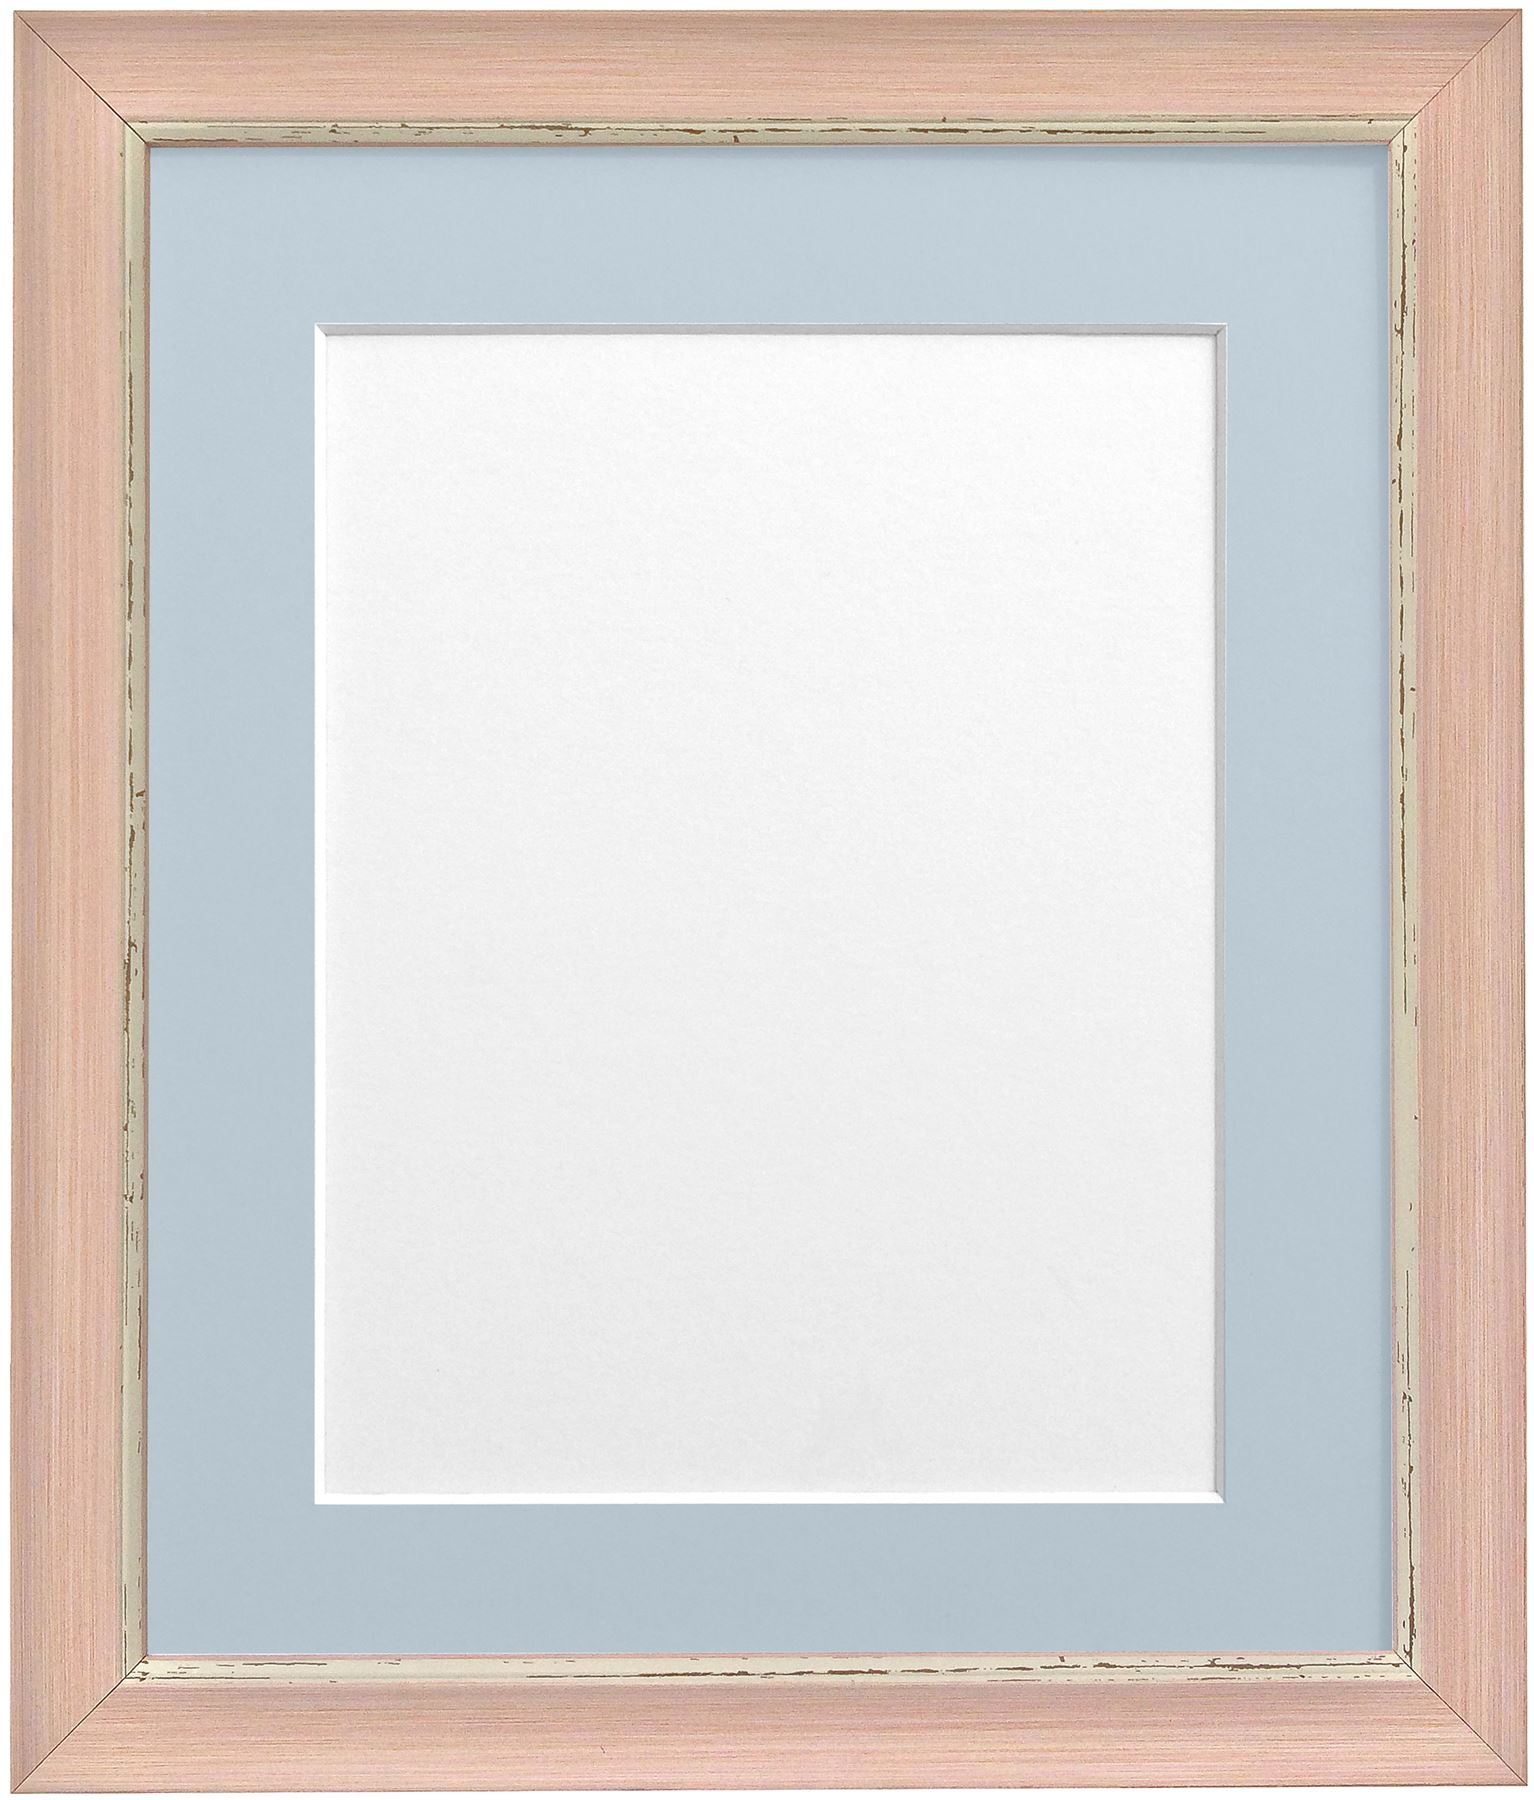 Frames by Post 10 X 8-inch Nordic Photo Frame for 7 X 5-inch Size ...